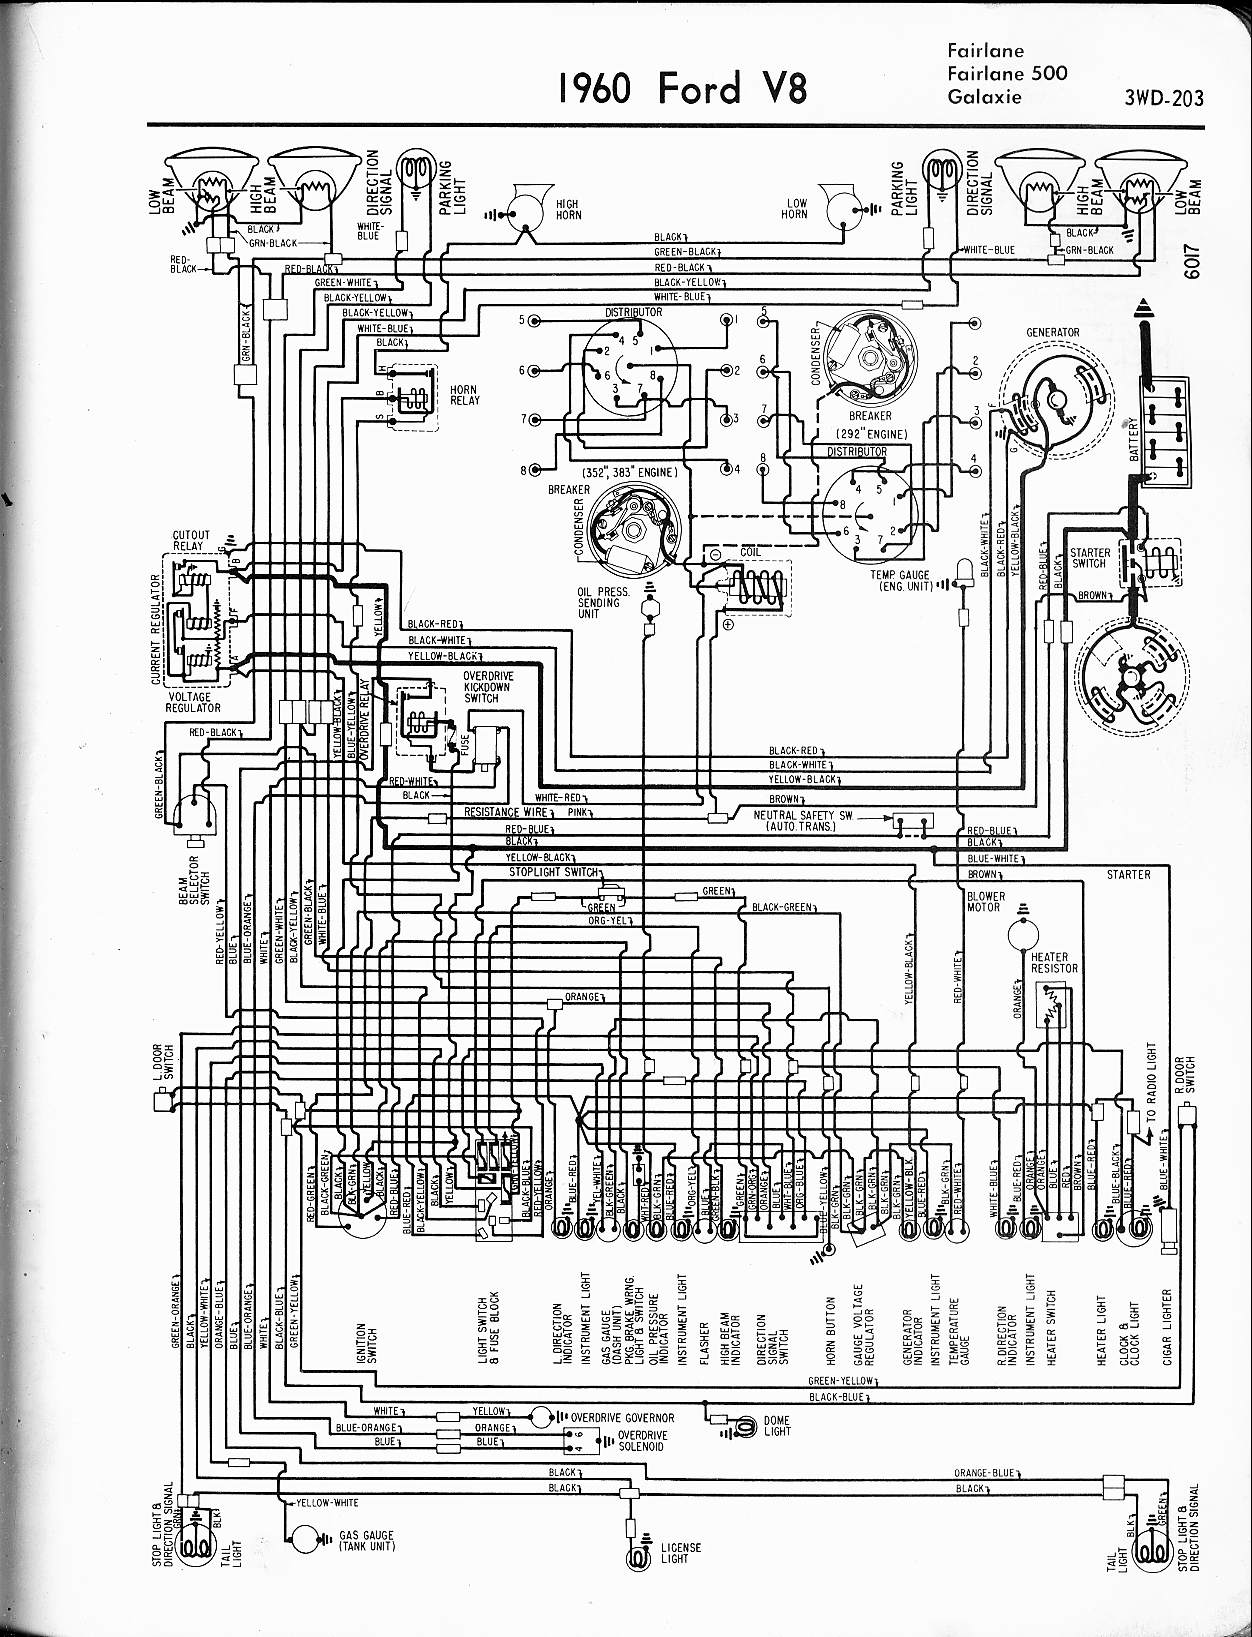 MWire5765 203 57 65 ford wiring diagrams 1968 ford galaxie 500 wiring diagram at fashall.co